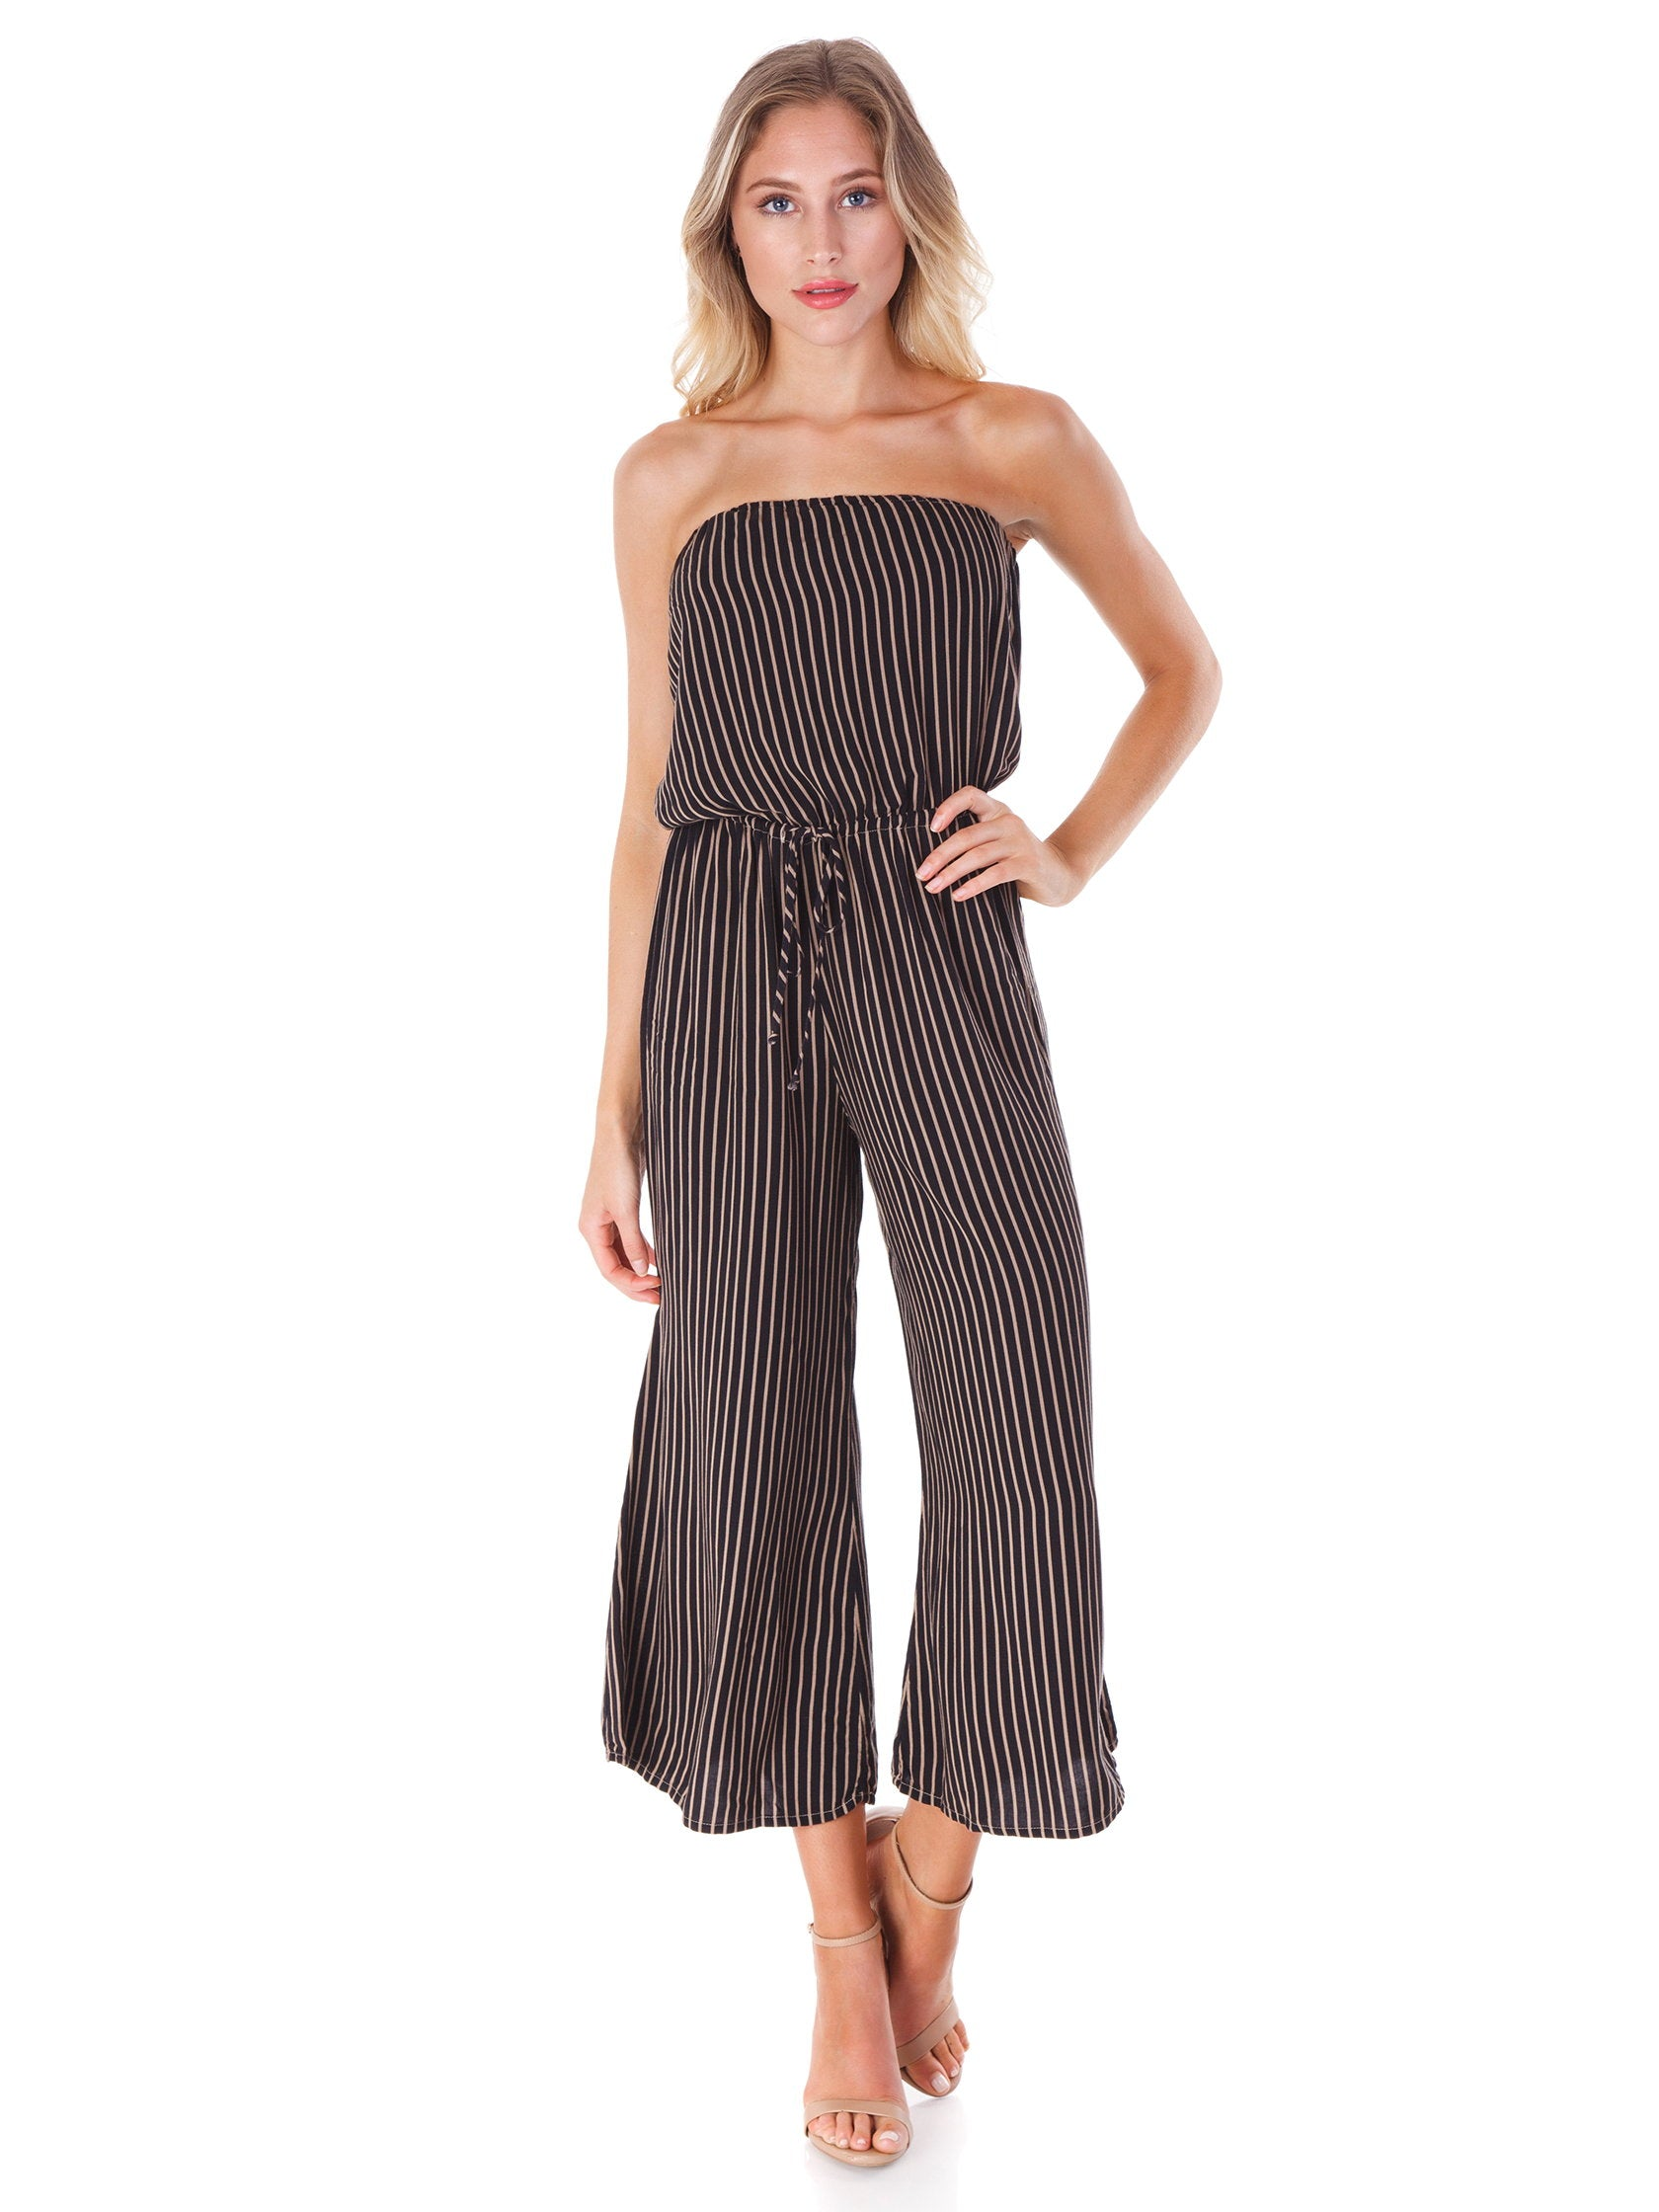 Girl outfit in a jumpsuit rental from Blue Life called Stripe Bell Jumper